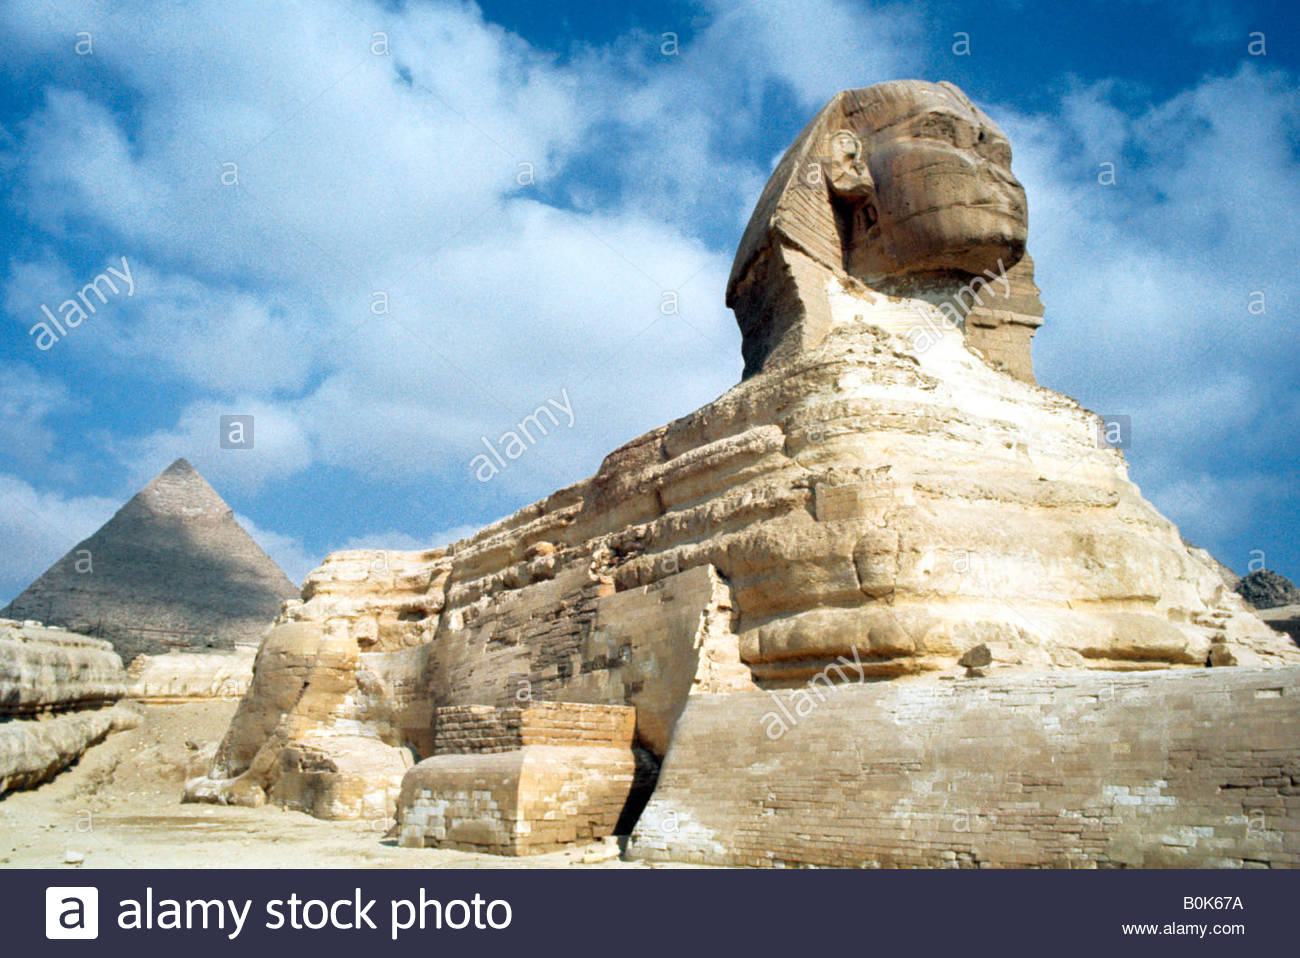 The Great Sphinx of Giza, Egypt, 20th Century. - Stock Image